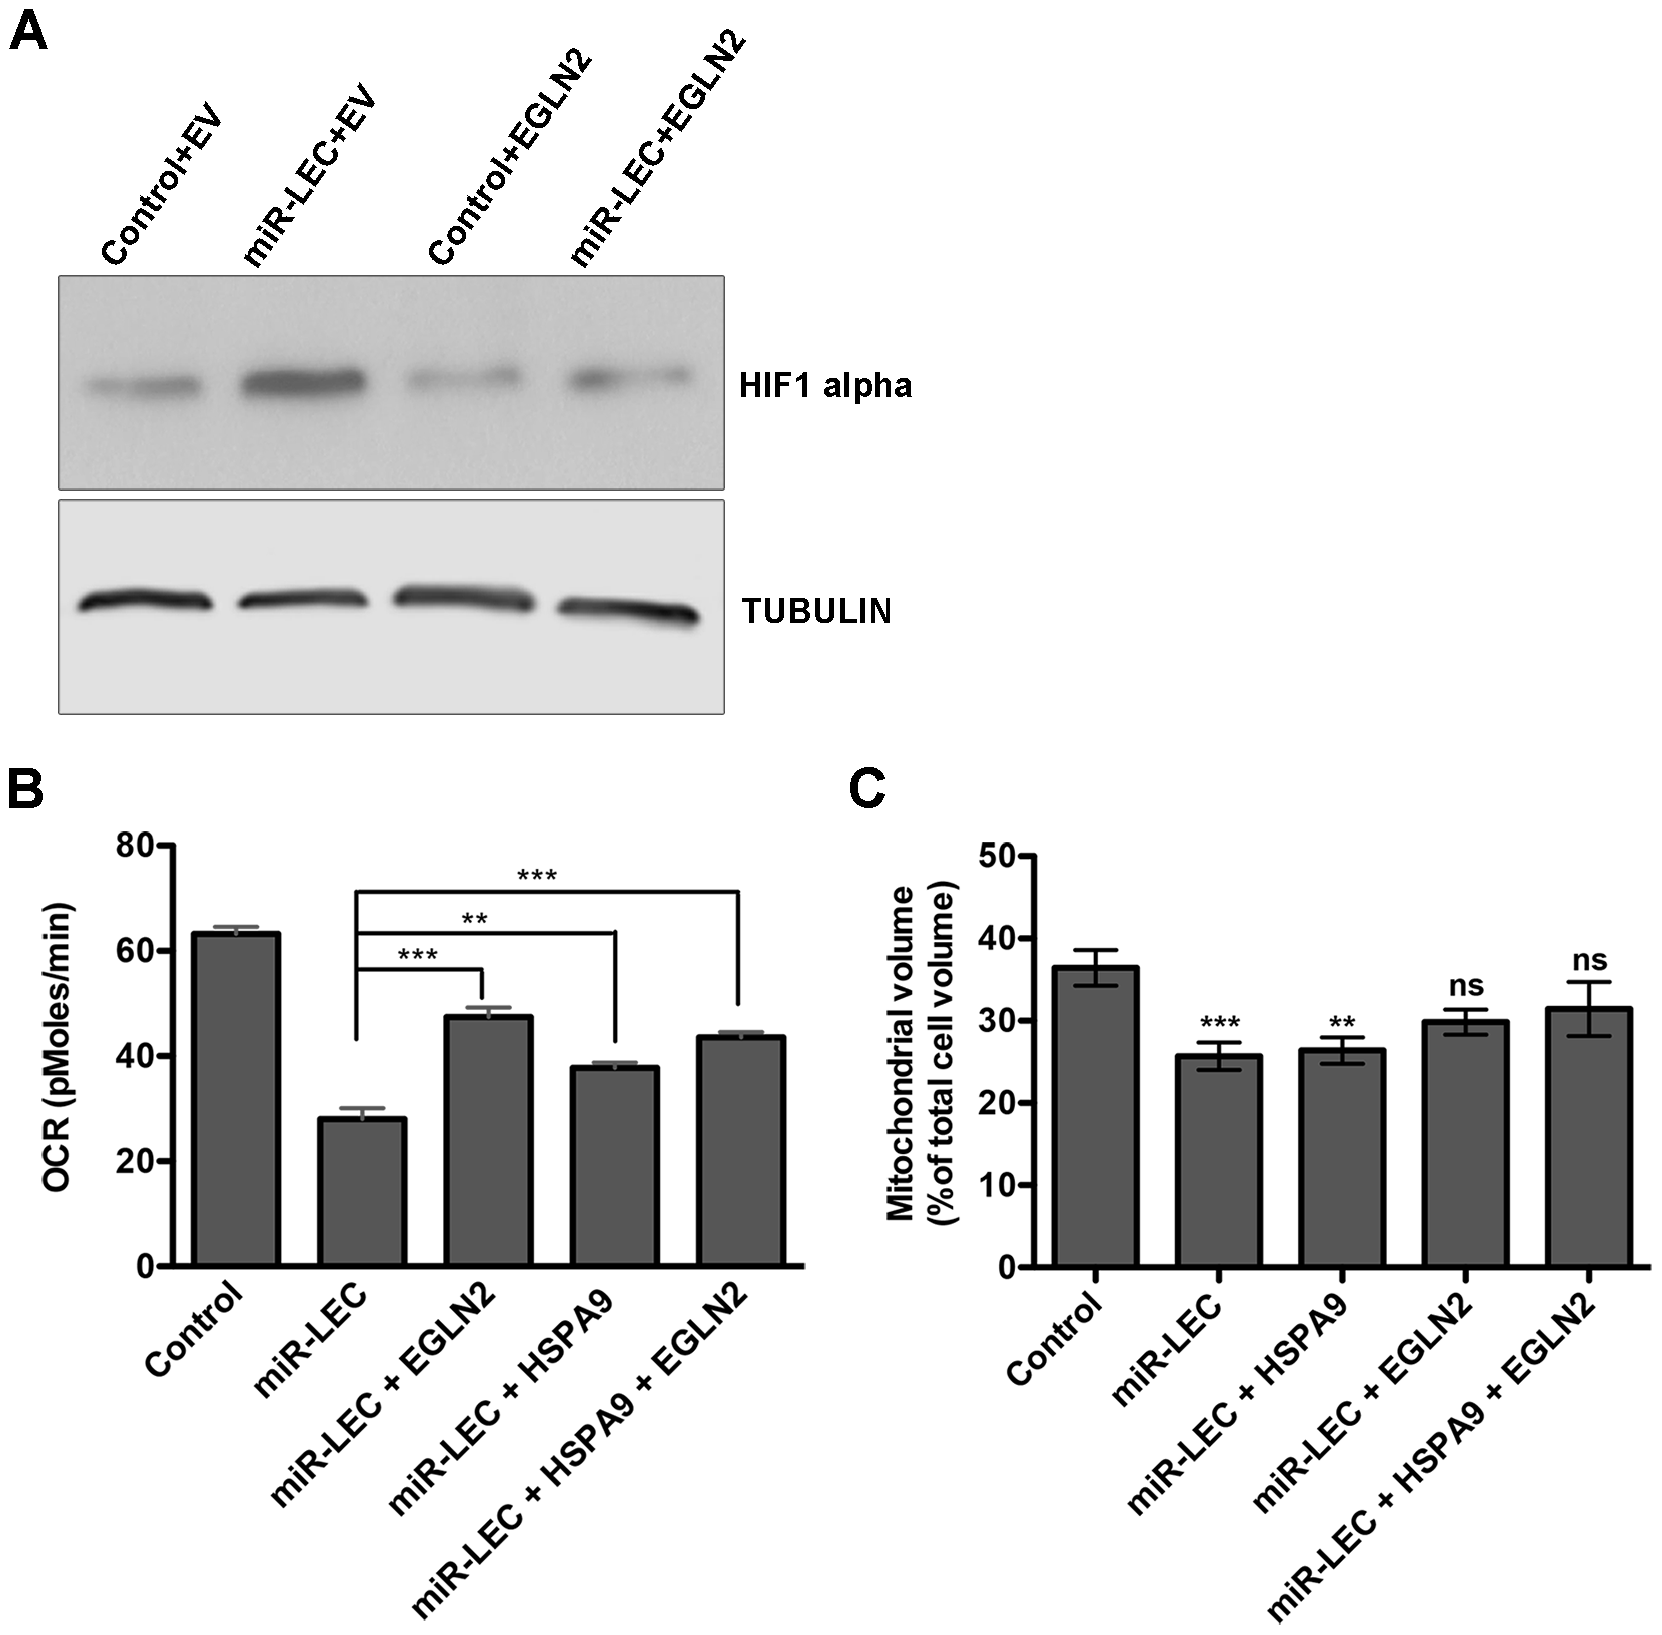 Overexpression of EGLN2 and HSPA9 partially rescues the miRNA cluster effect on glucose metabolism.